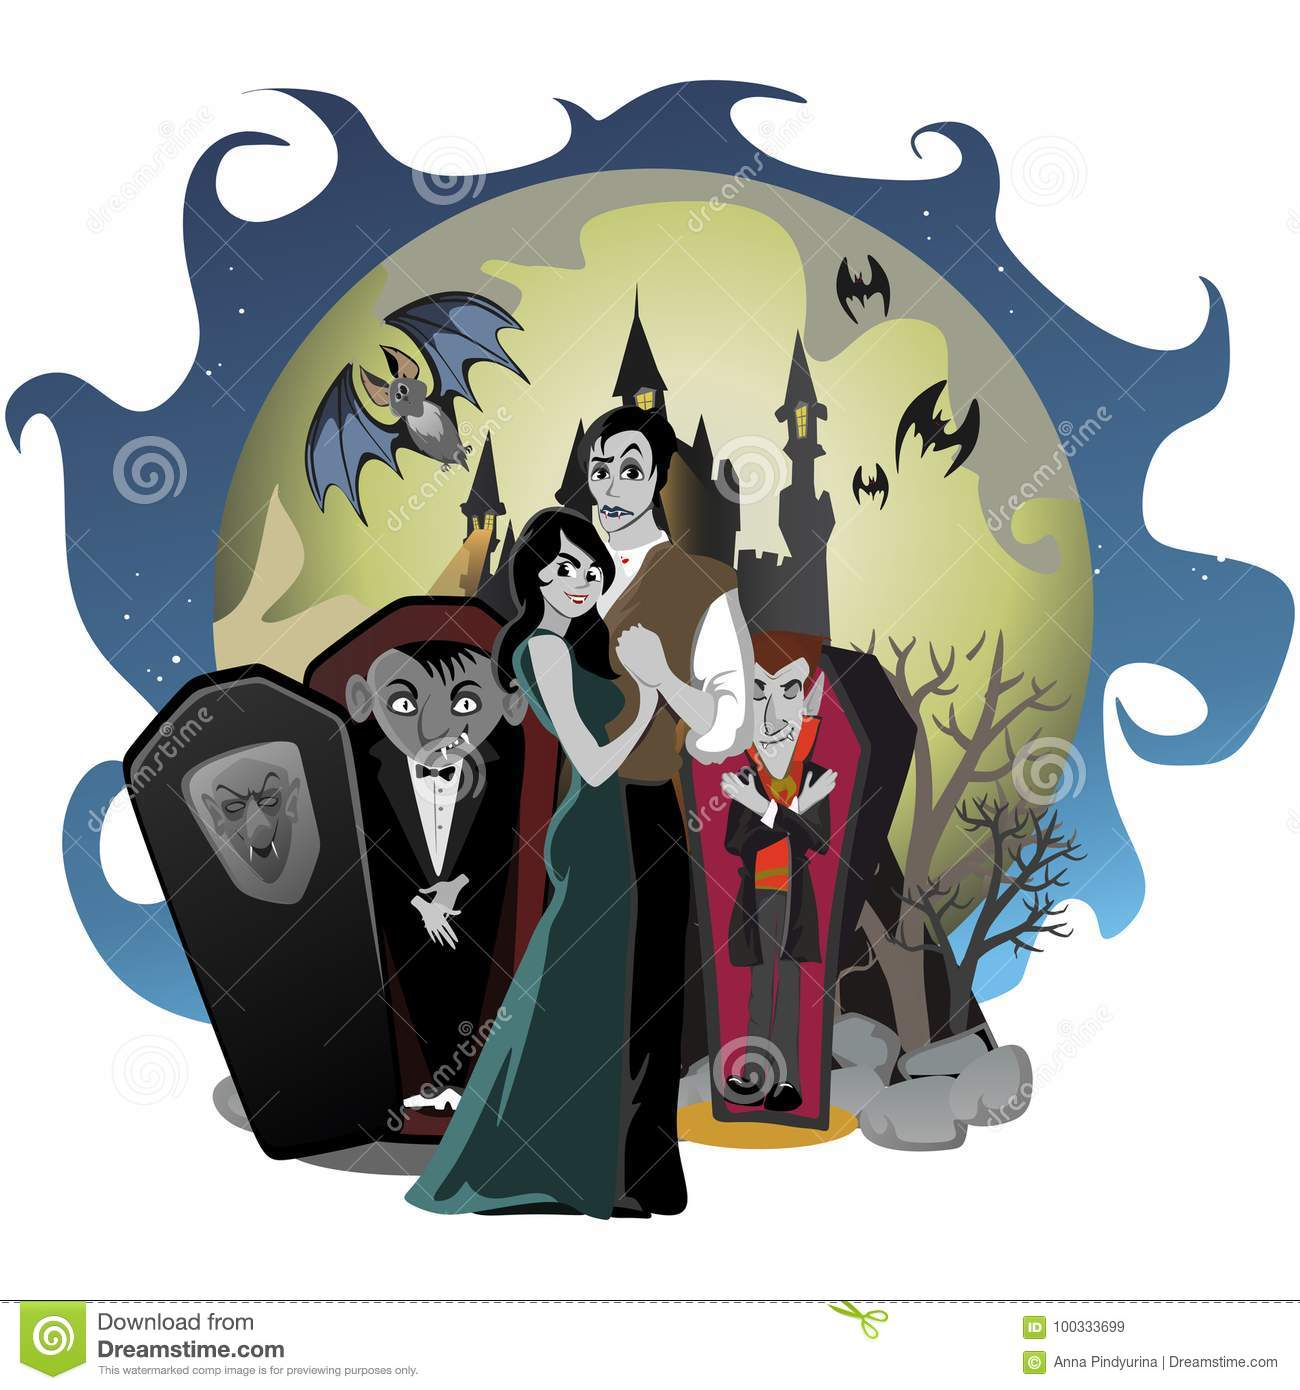 Faces Theatre Stock Illustrations – 131 Faces Theatre Stock Illustrations,  Vectors & Clipart - Dreamstime